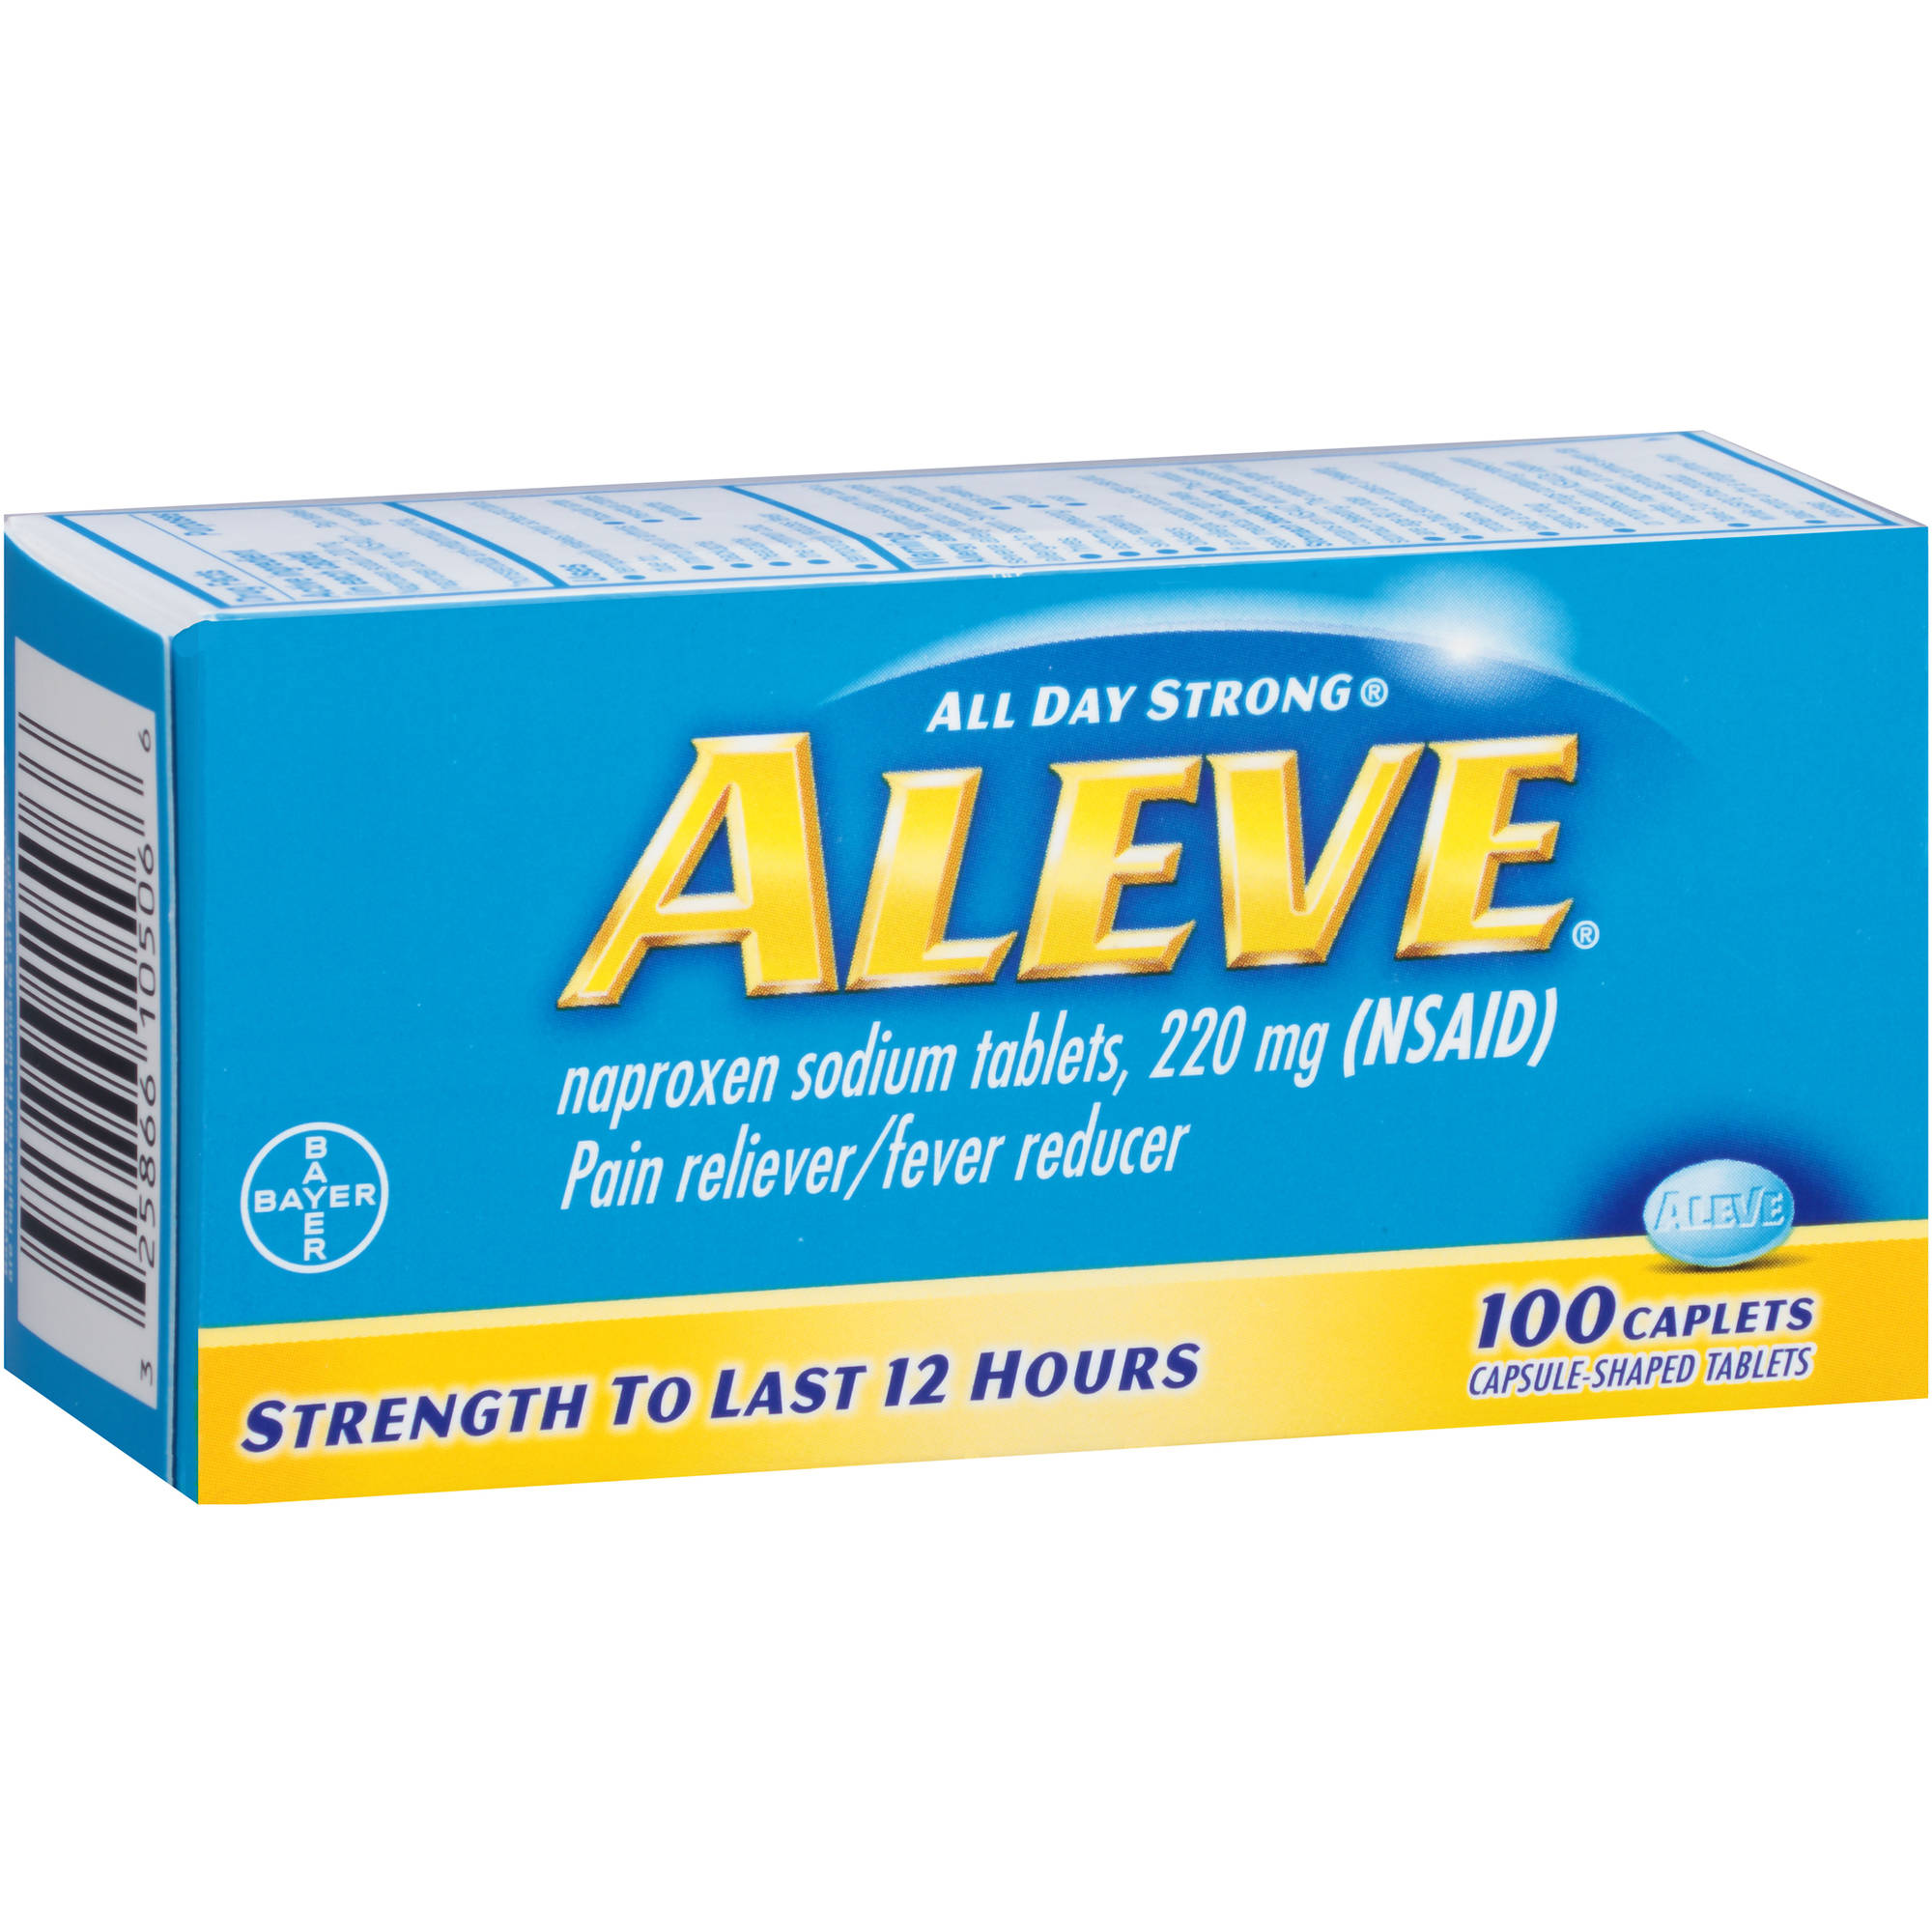 Aleve Naproxen Sodium Pain Reliever/Fever Reducer, 220mg, 100 count